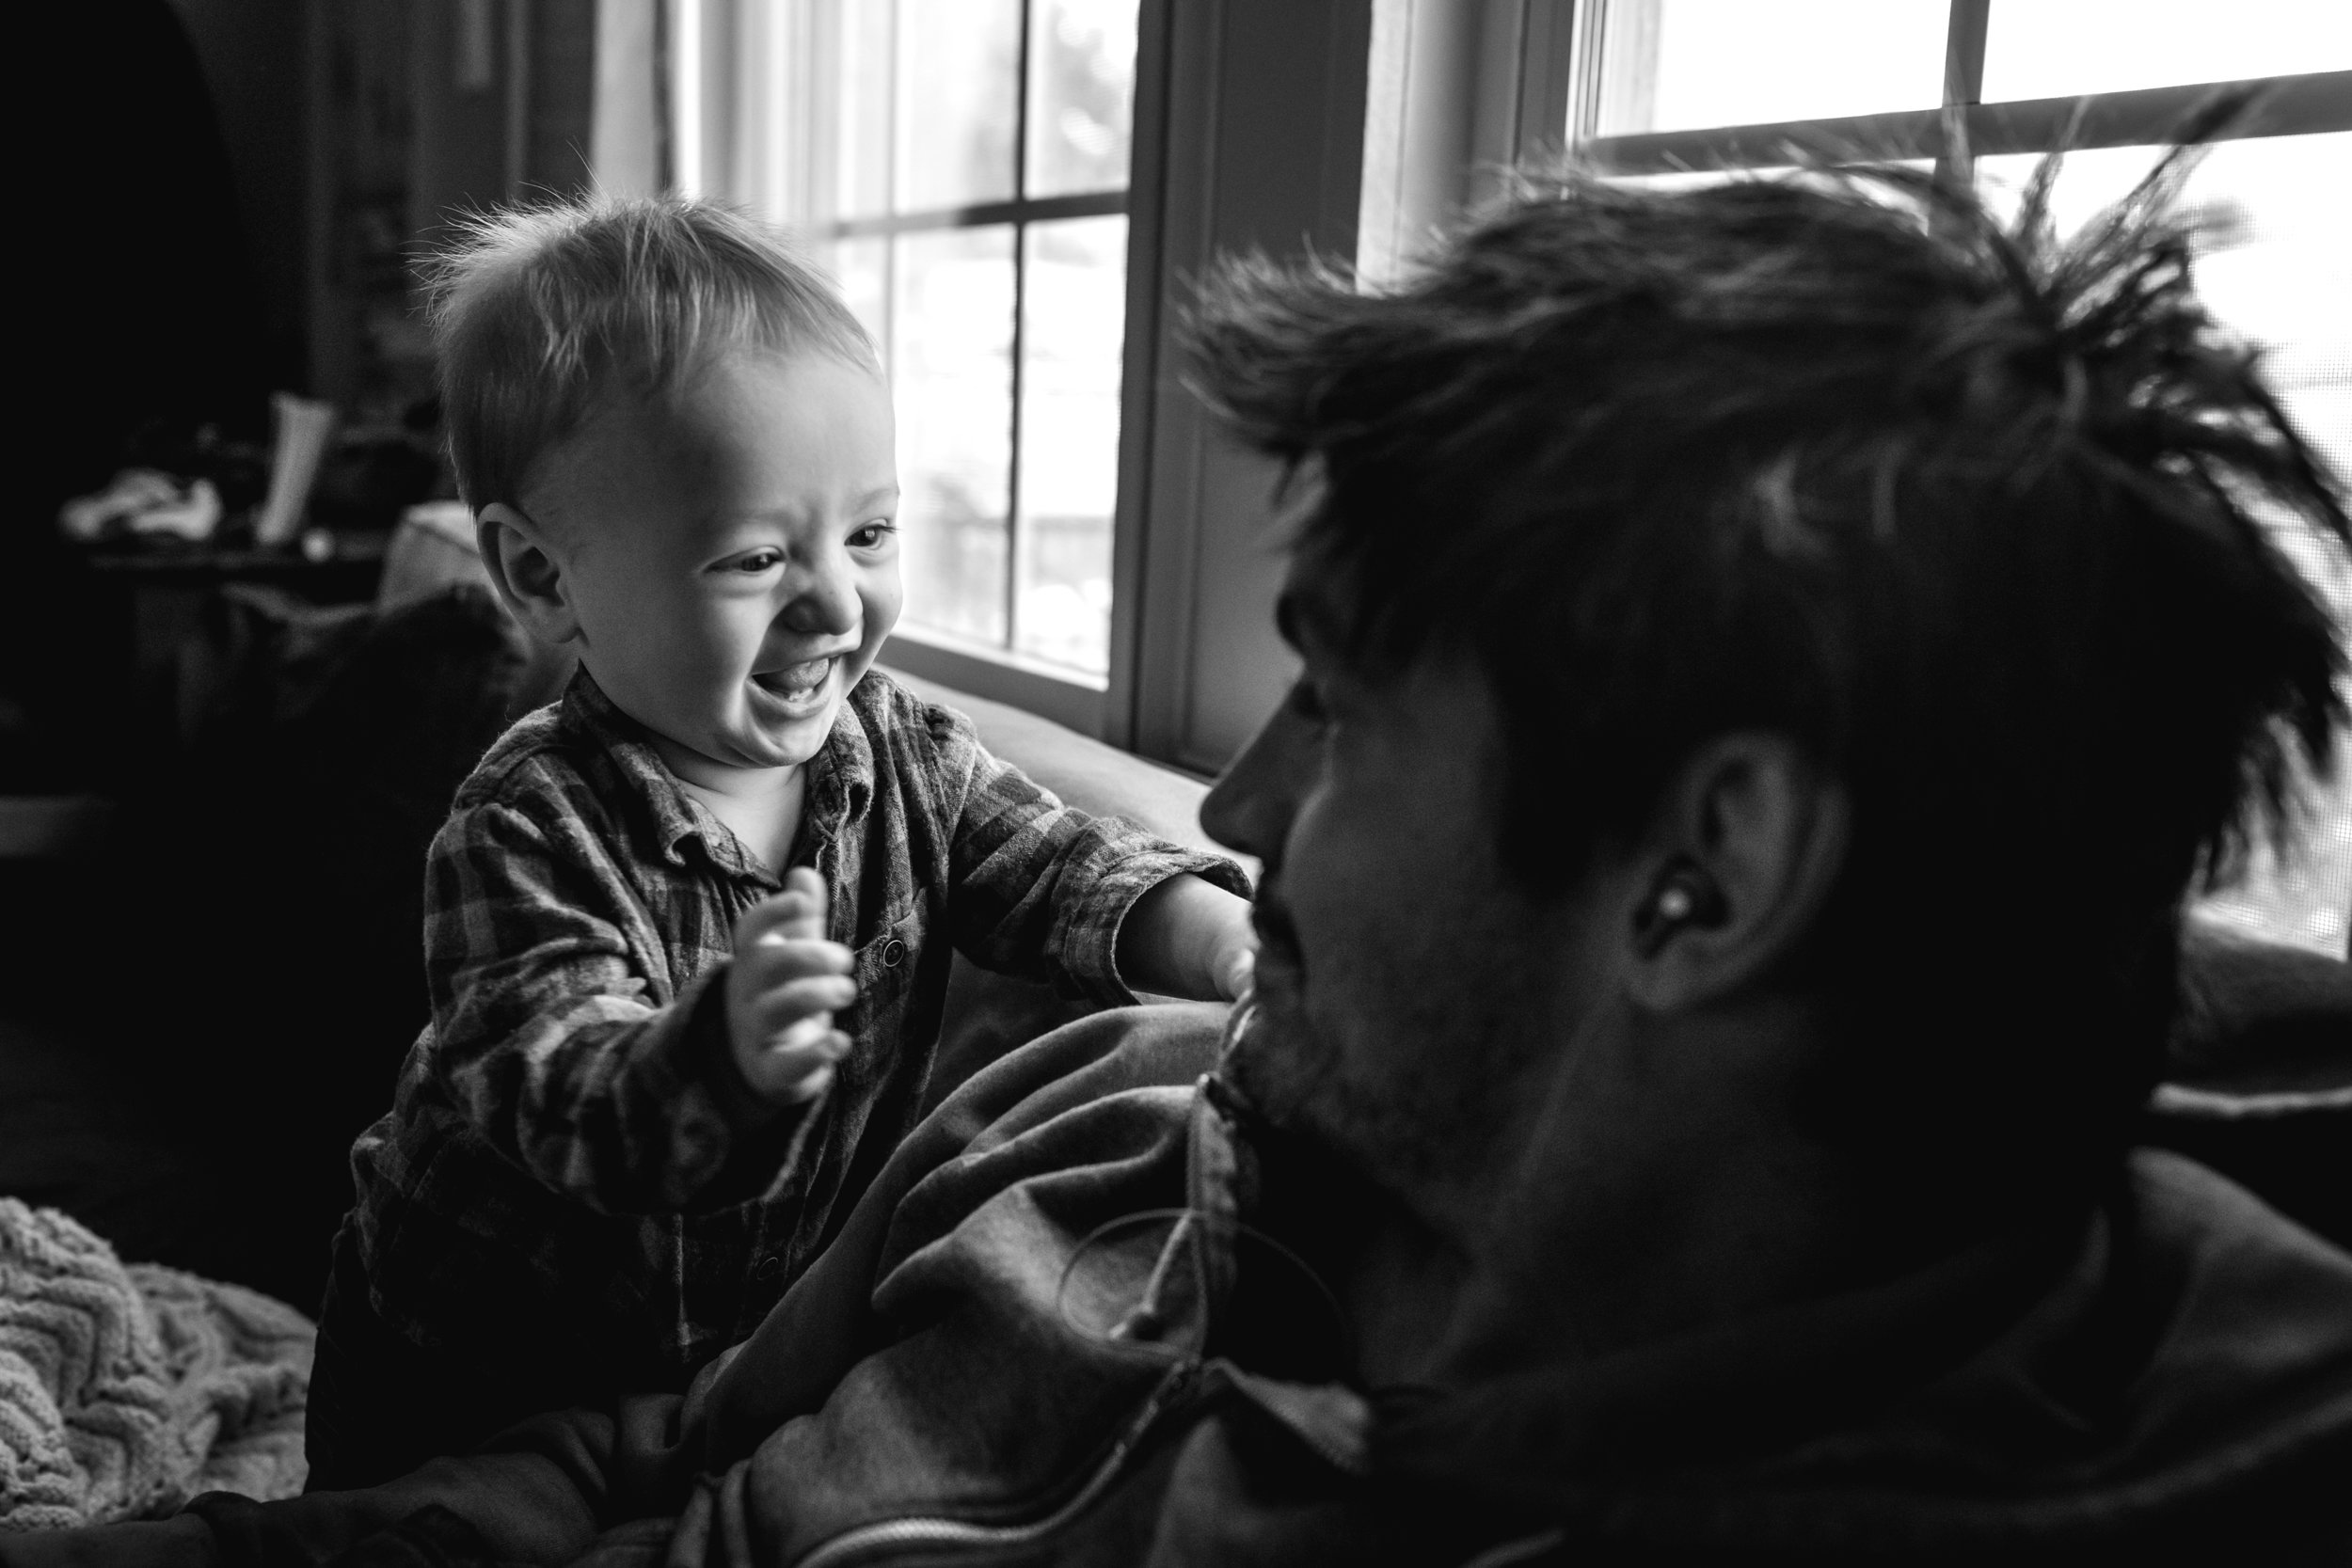 baby smiles and looks at his dad